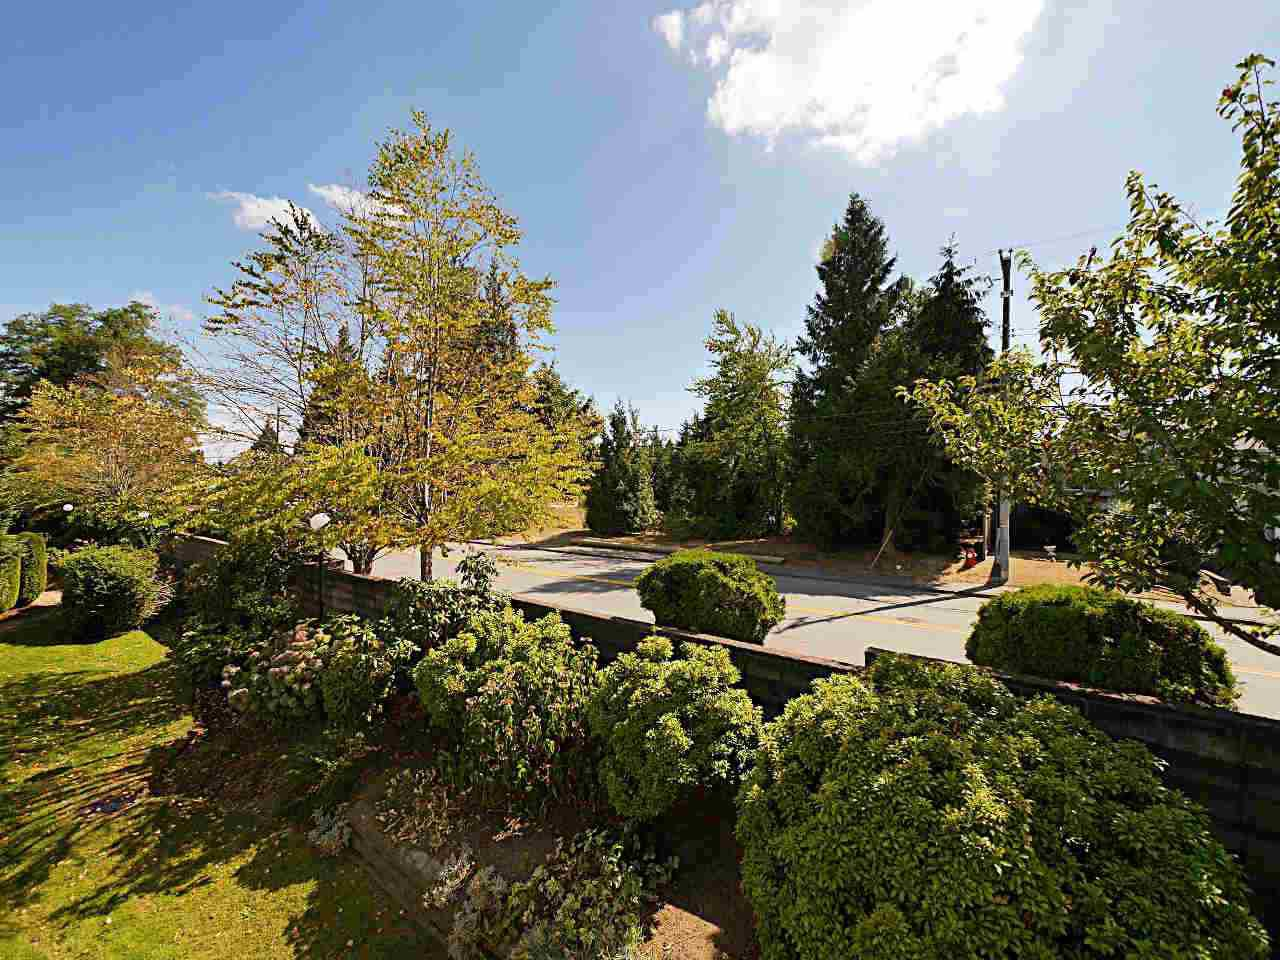 """Main Photo: 203 15153 98 Avenue in Surrey: Guildford Townhouse for sale in """"Glenwood Village at Guildford"""" (North Surrey)  : MLS®# R2200420"""